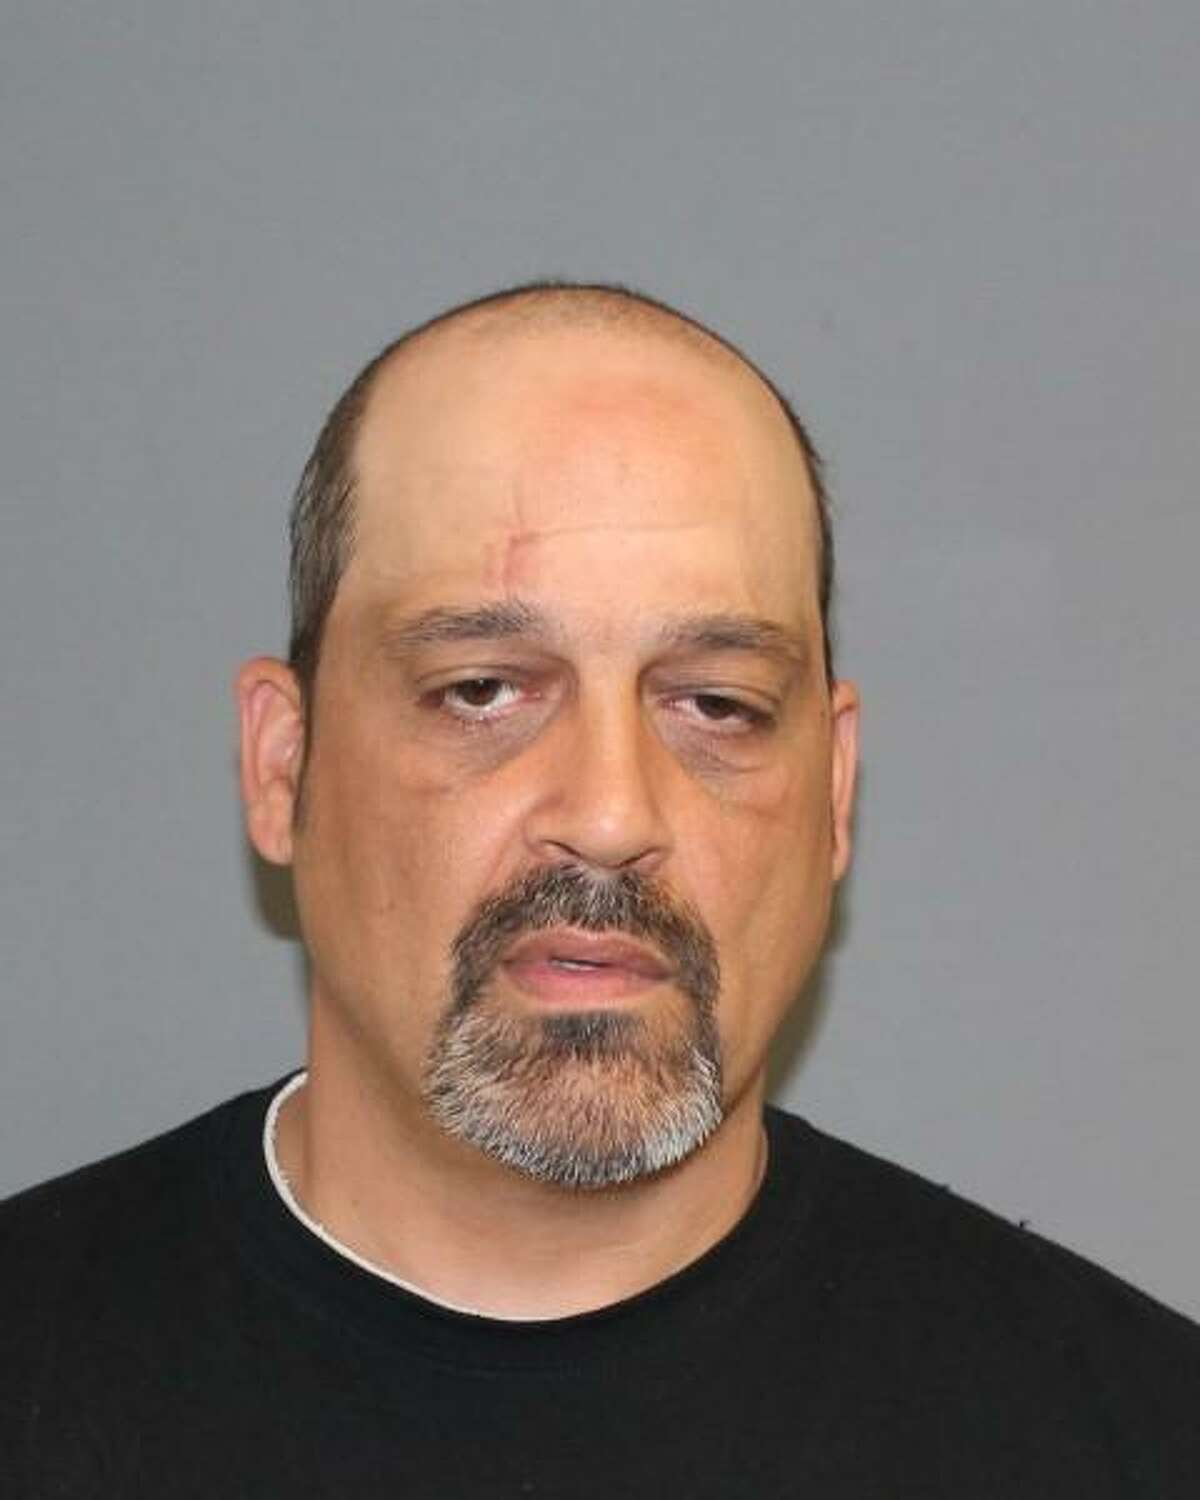 Michael Petro, 45, of Oakville, was charged with third-degree burglary and third-degree burglary in connection with the theft of equipment from Perkin and Elmer on Bridgeport Avenue in Shelton. He was arrested on Sunday. June 4. 2017.